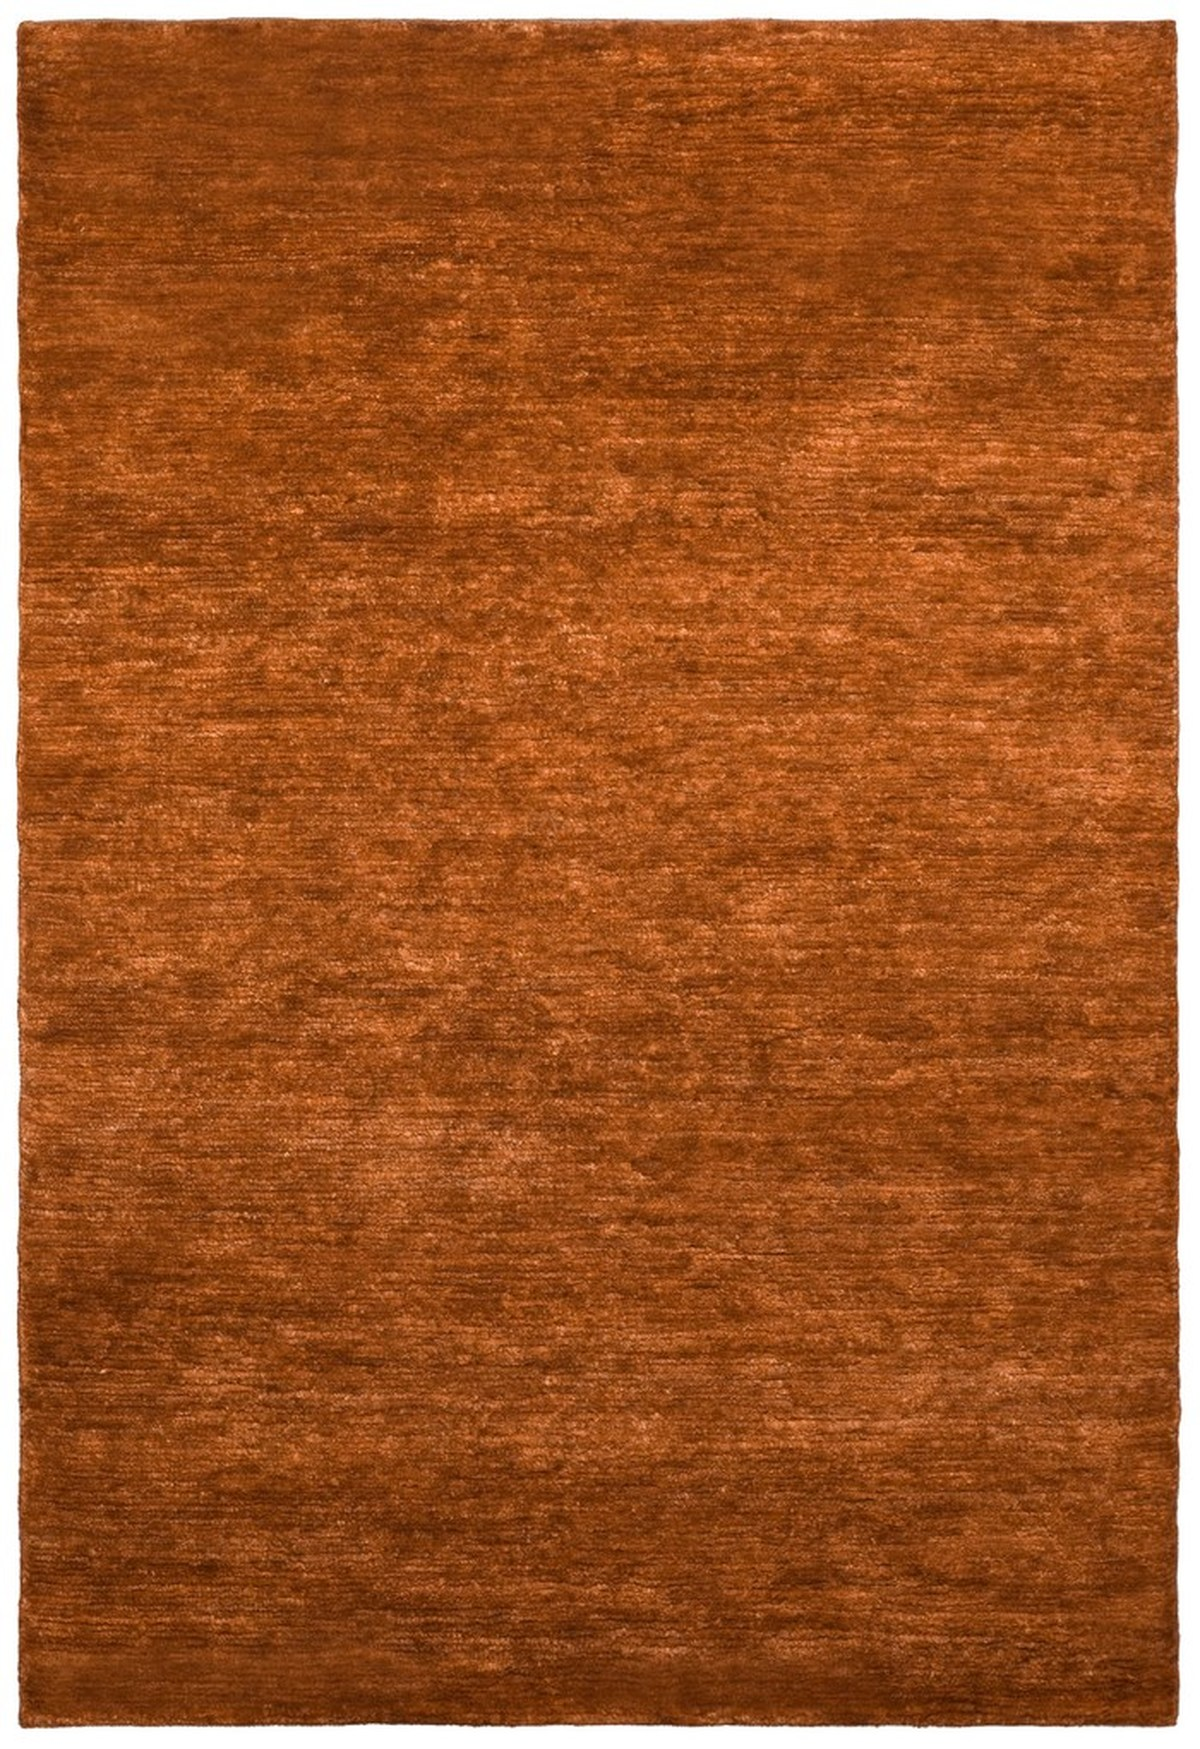 Rug Boh211c Bohemian Area Rugs By Safavieh